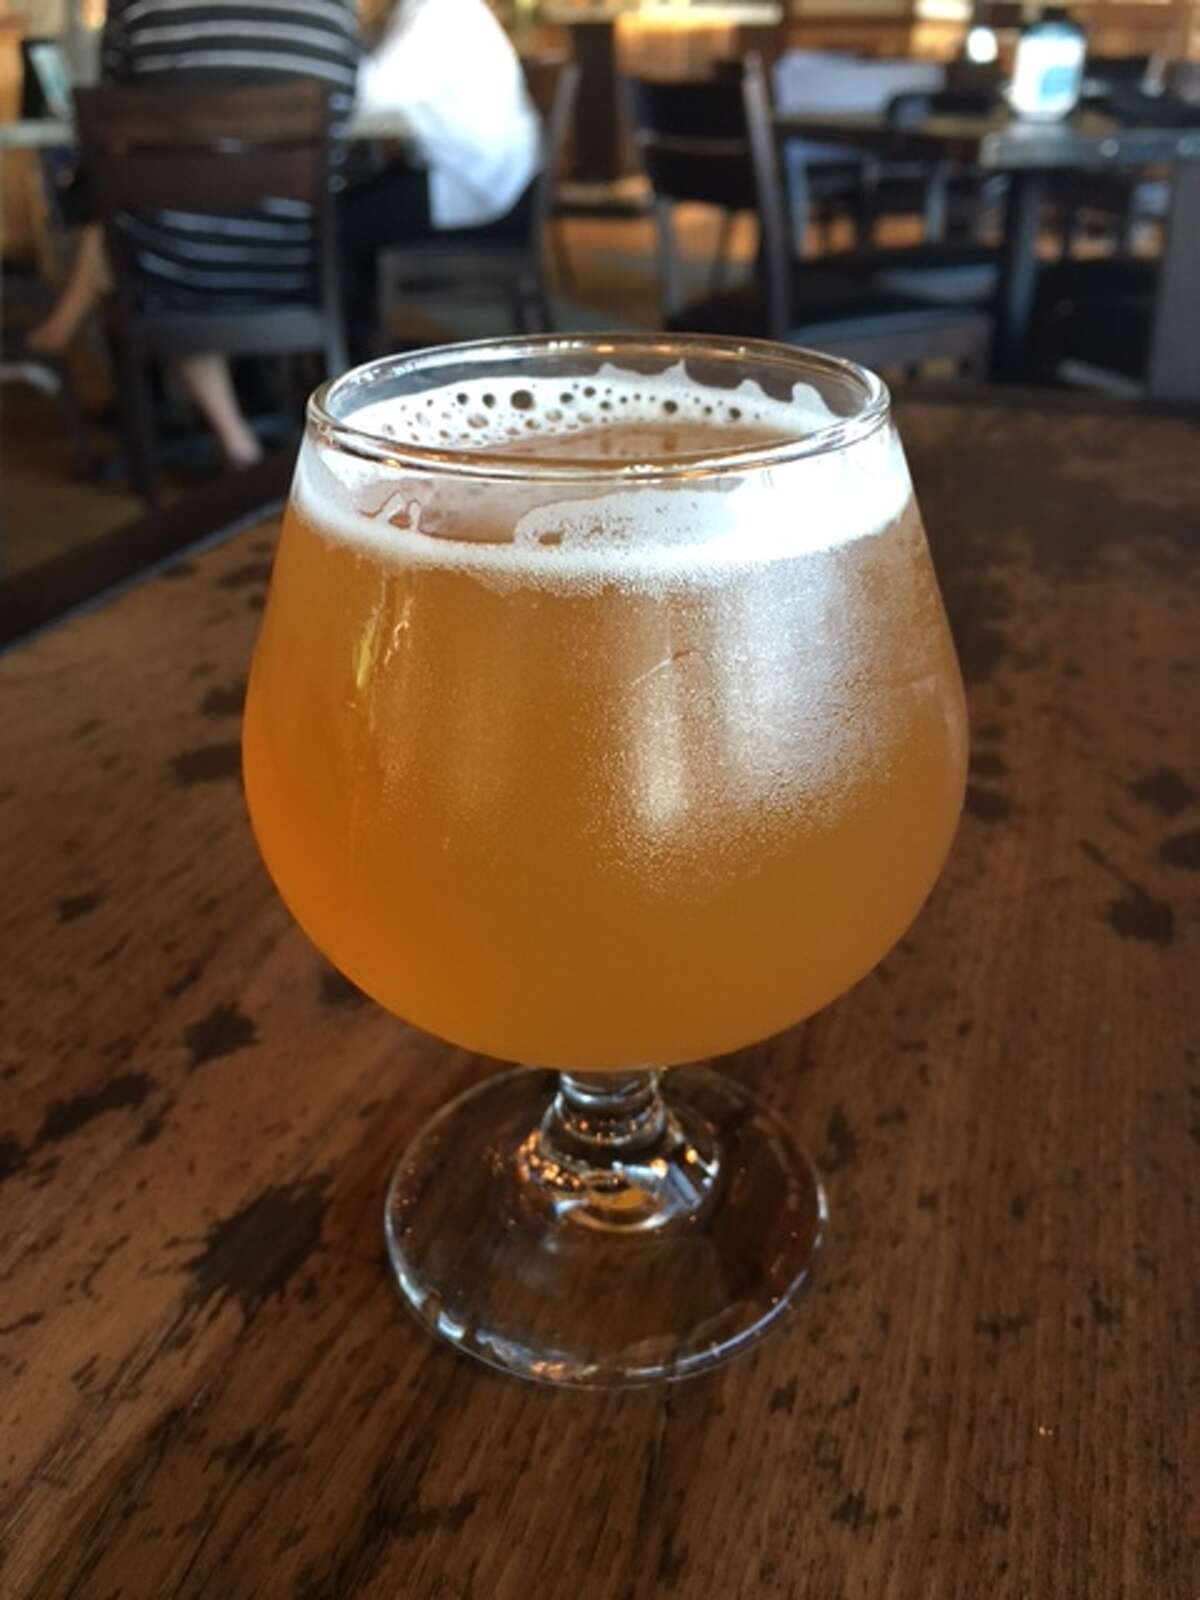 Tank 7 Saison from Boulevard Brewery in Kansas City, Missouri, one of the craft beers on tap at Pour Society.